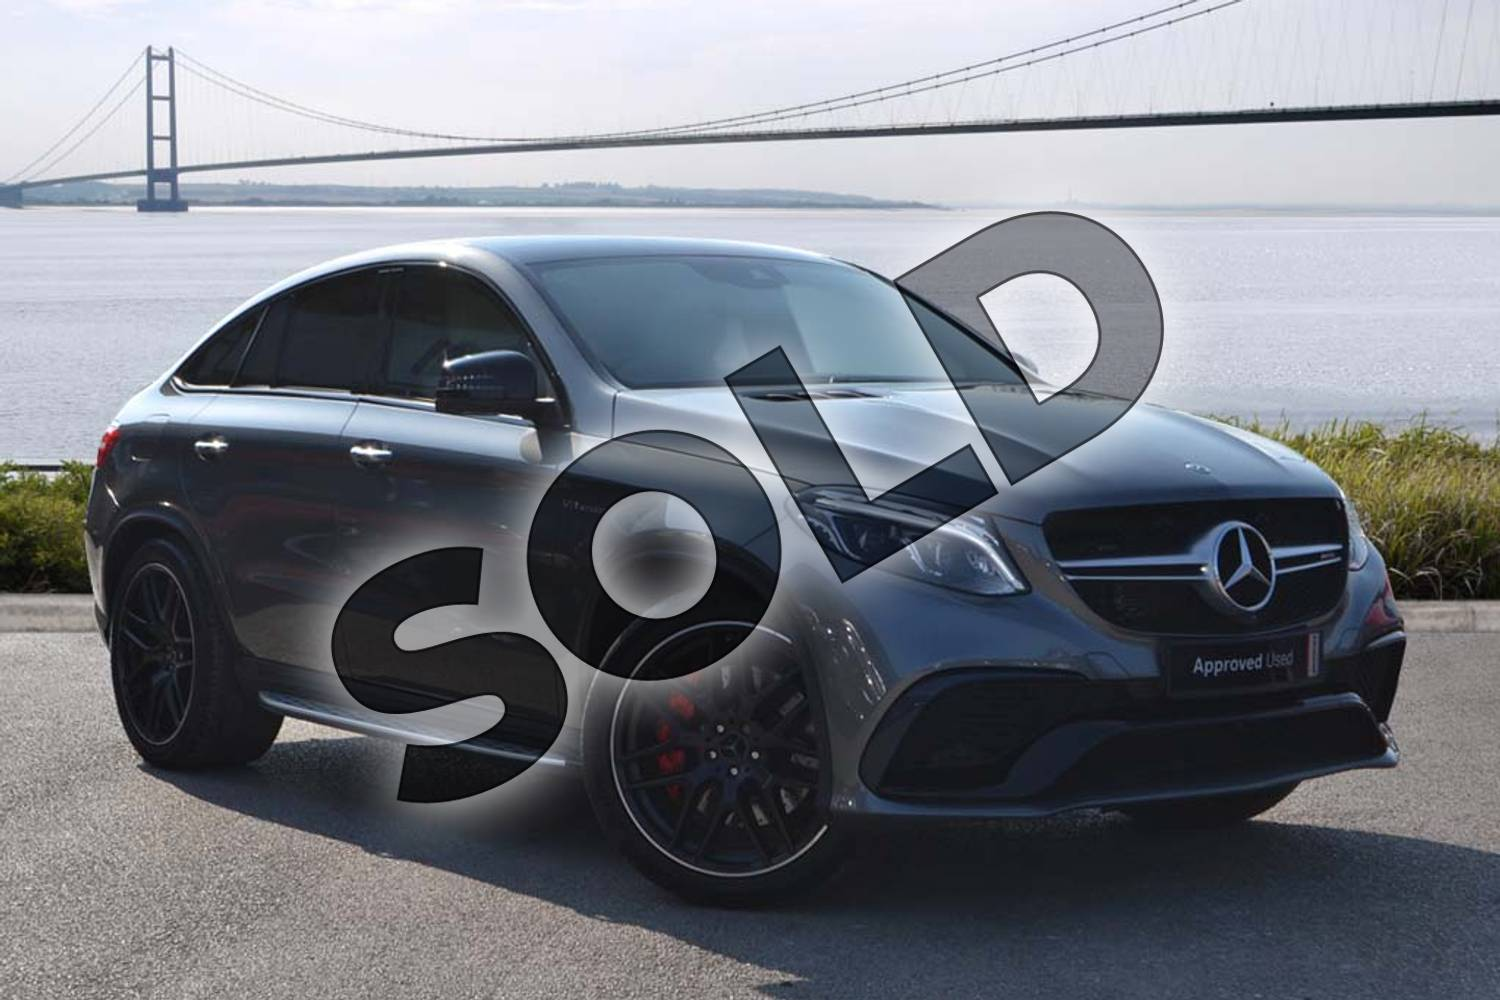 2019 Mercedes-Benz GLE AMG Coupe GLE 63 S 4Matic Night Edition 5dr 7G-Tronic in selenite grey metallic at Mercedes-Benz of Hull